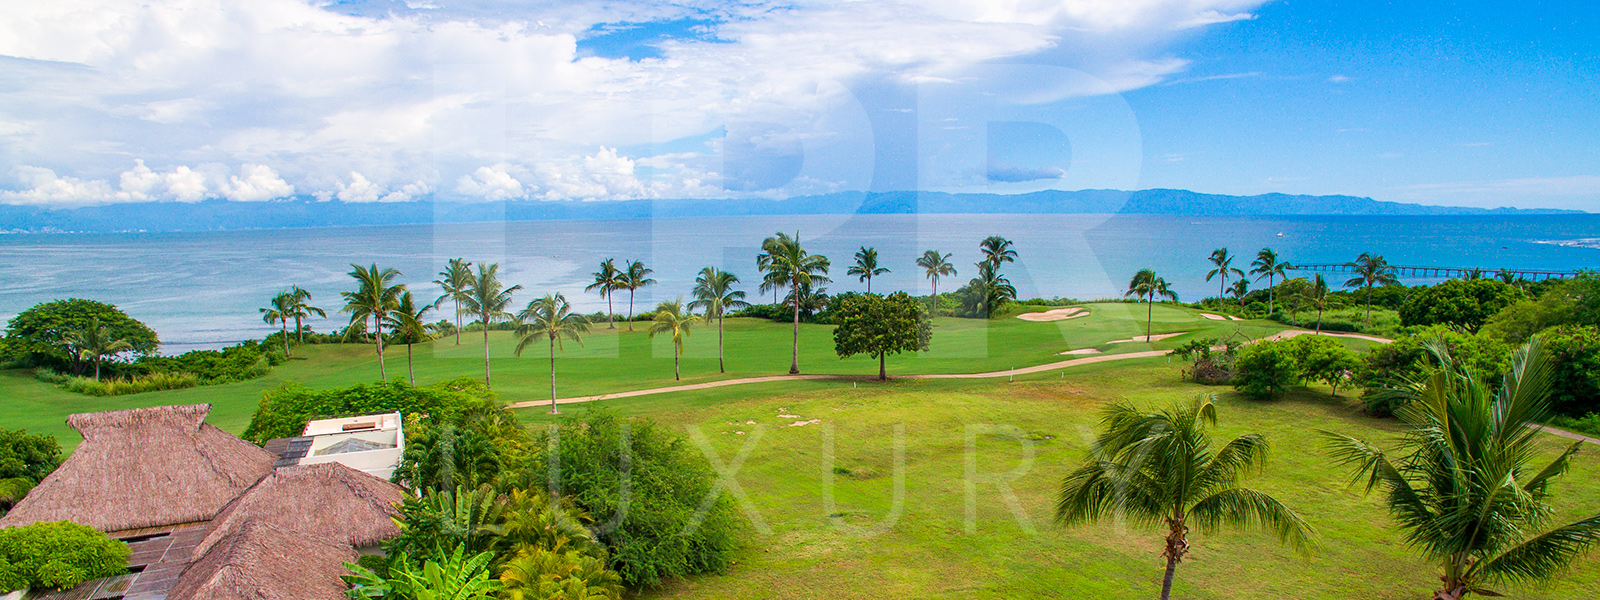 Lagos del Mar - Lot 18 - Punta Mita Resort - Riviera Nayarit - Mexico